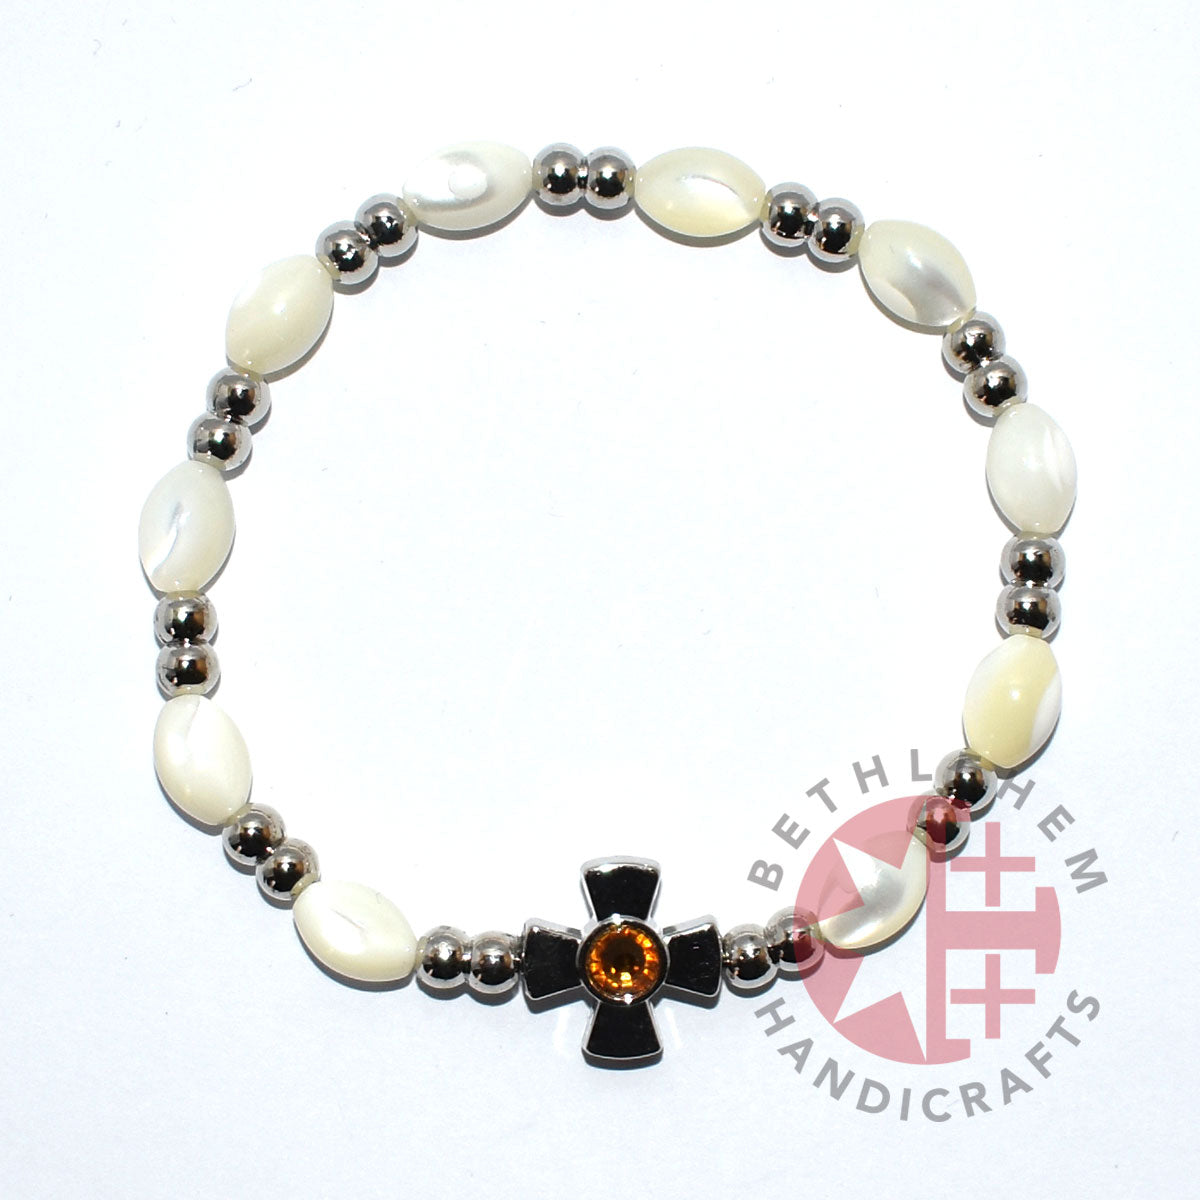 Mother of Pearl Bracelet 8*6 mm Beads (Citrine Crystal Stone)